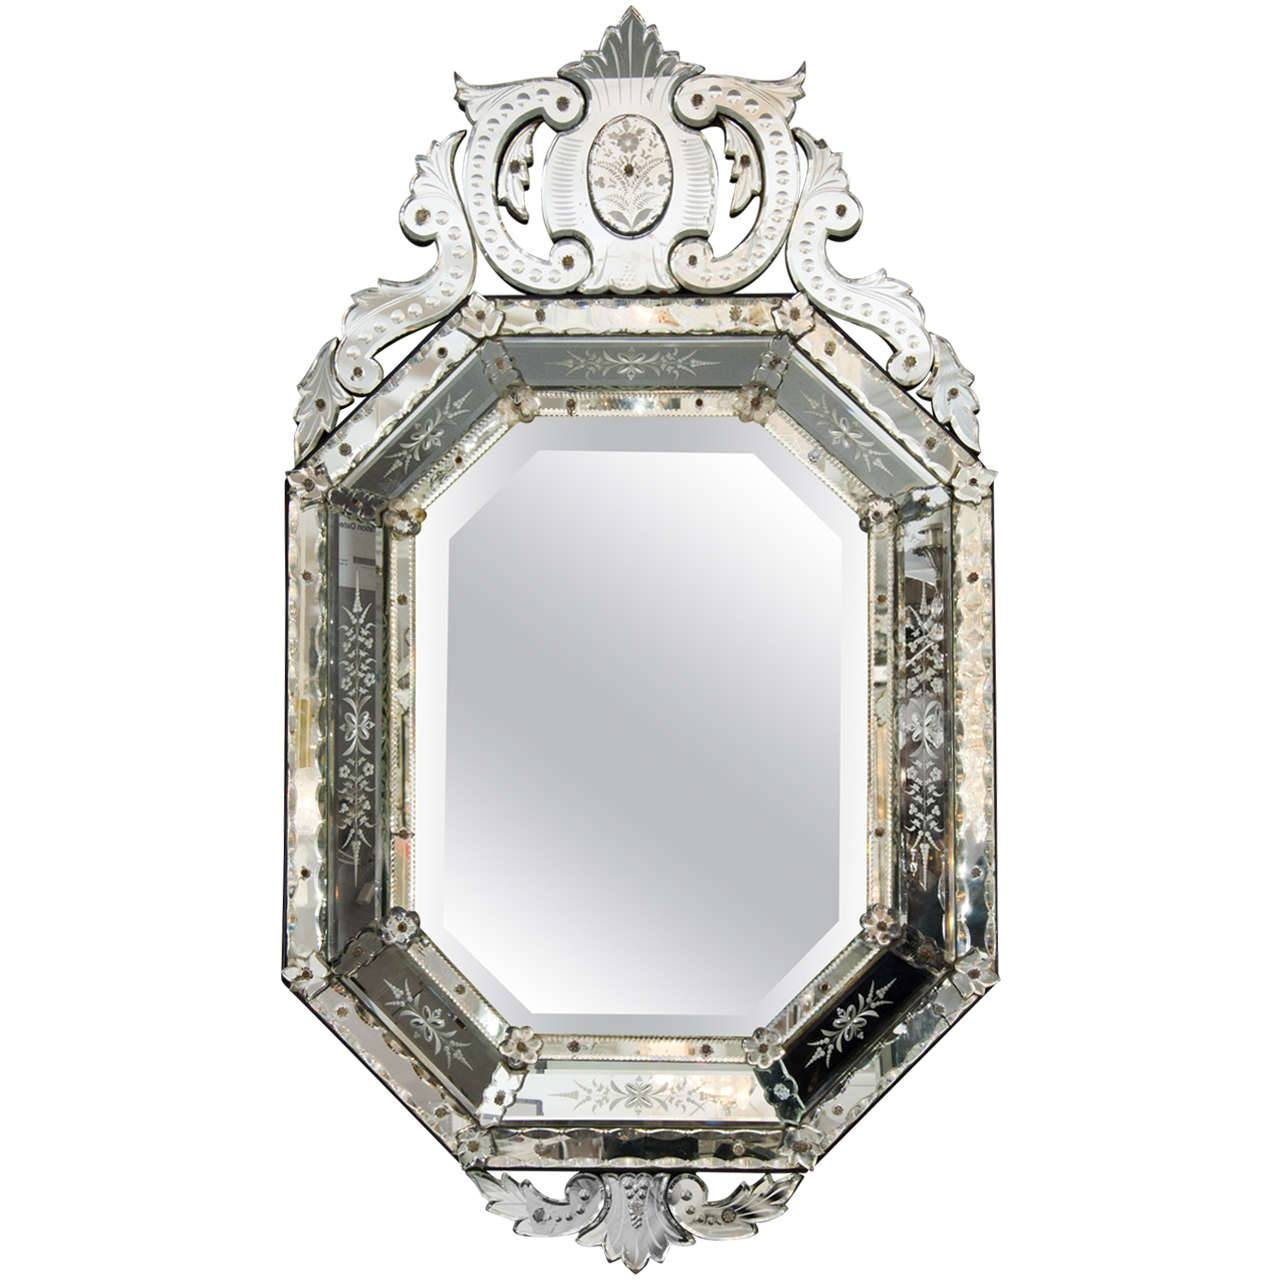 Venetian Mirrors For Sale Uk | Vanity Decoration in Venetian Tray Mirrors (Image 21 of 25)